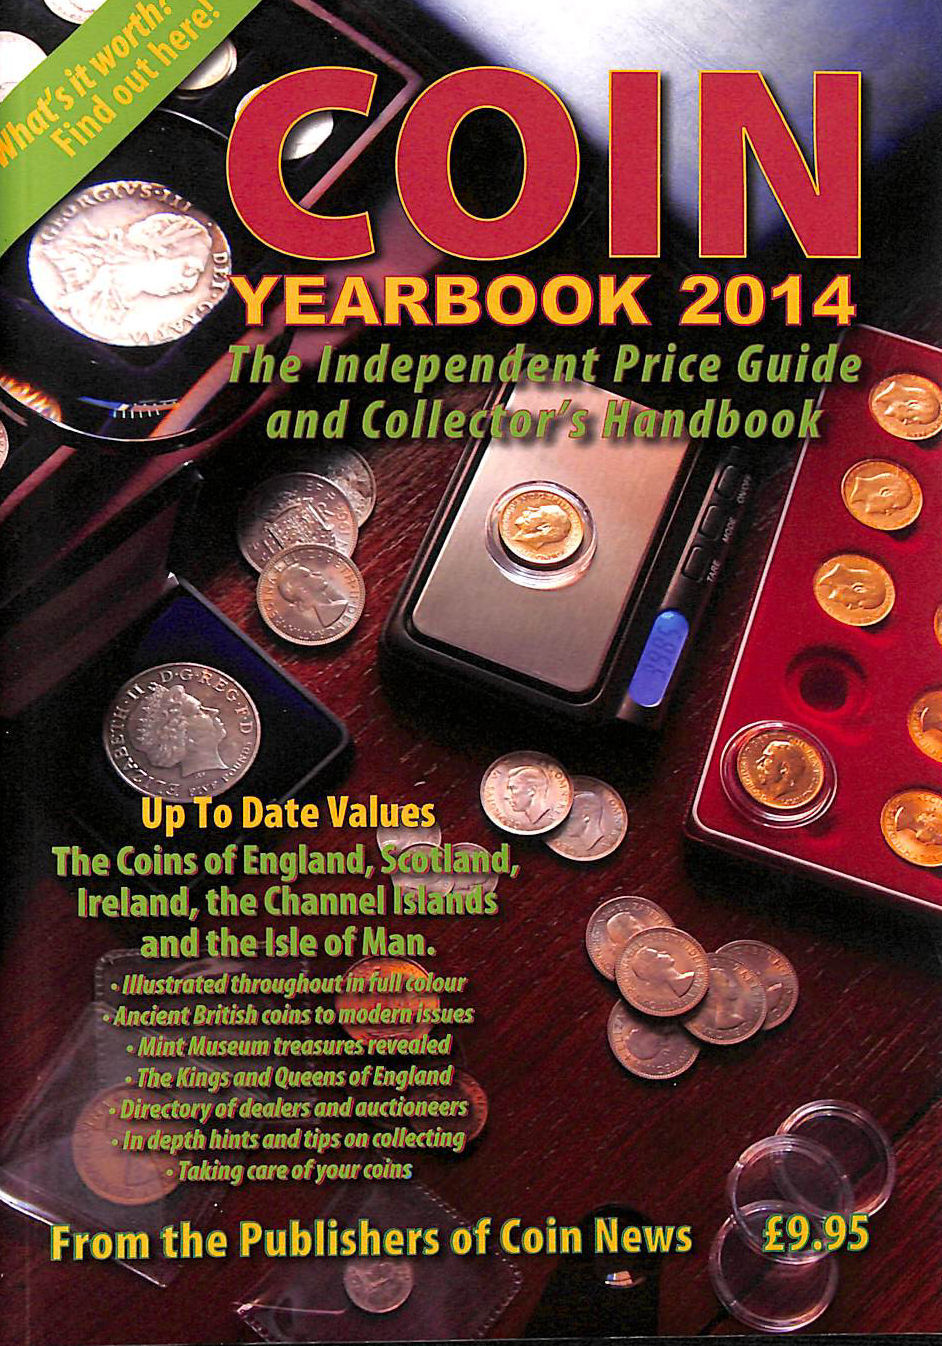 Image for Coin Yearbook 2014 by John W. Mussell (2013-09-27)